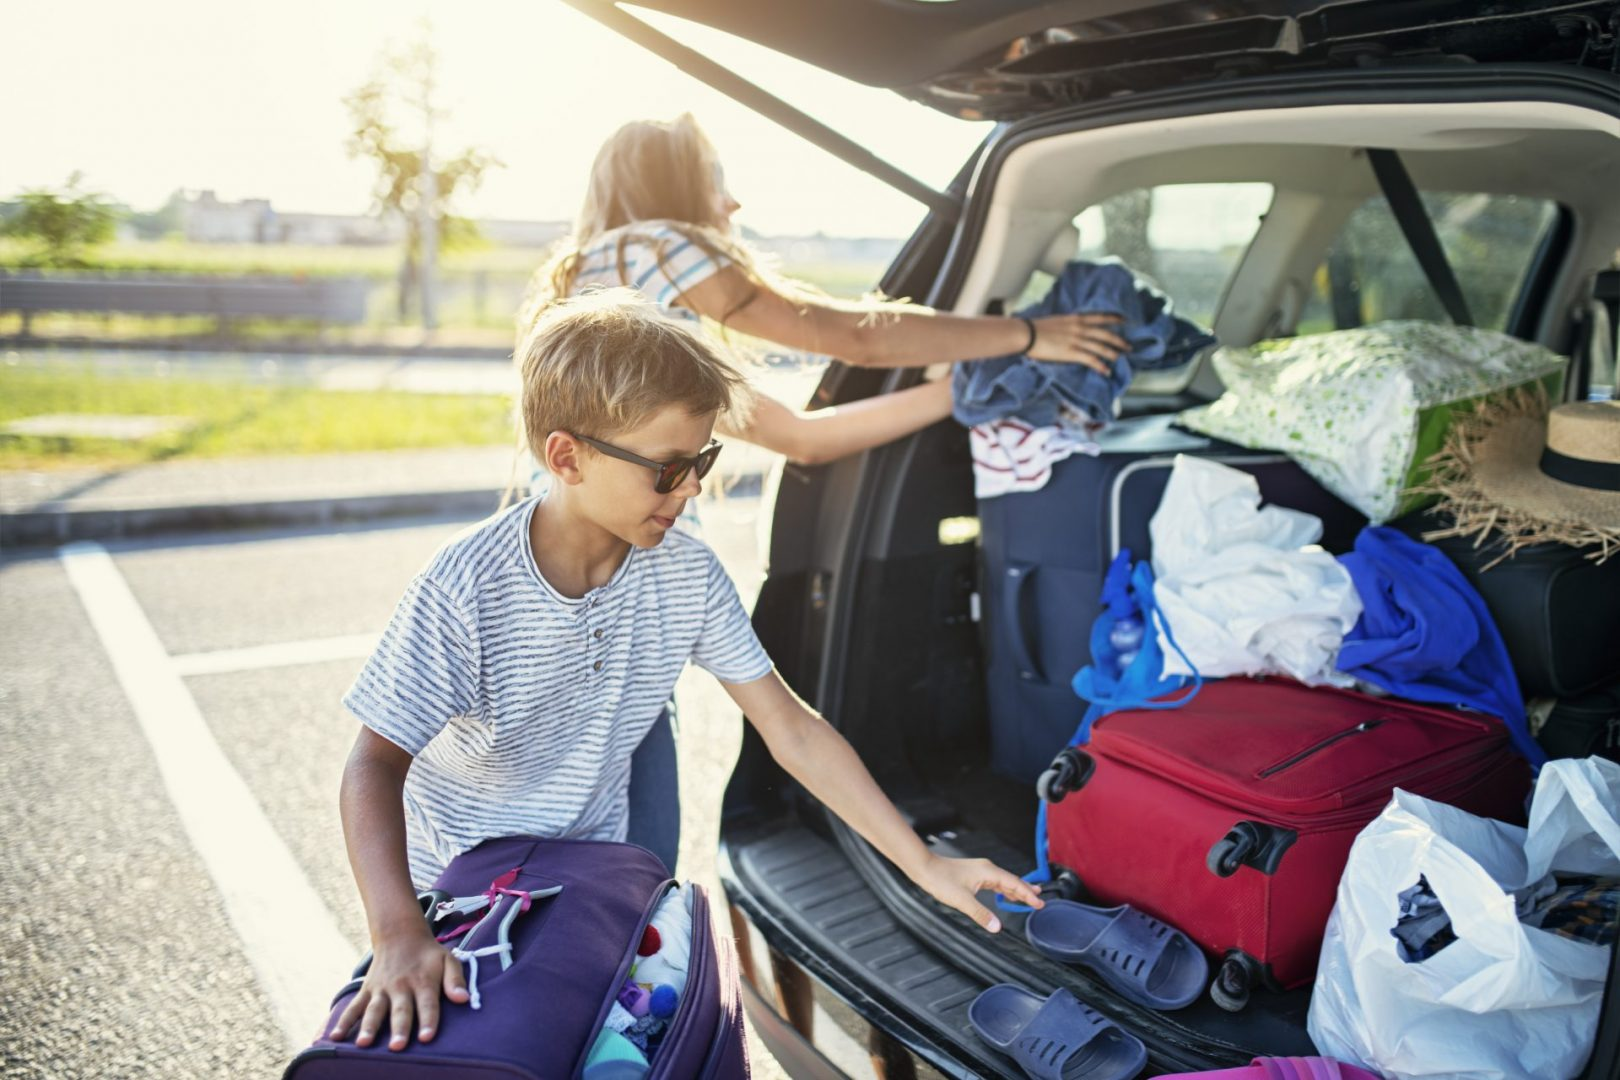 Kids Helping To Pack The Family Car For Road Trip.